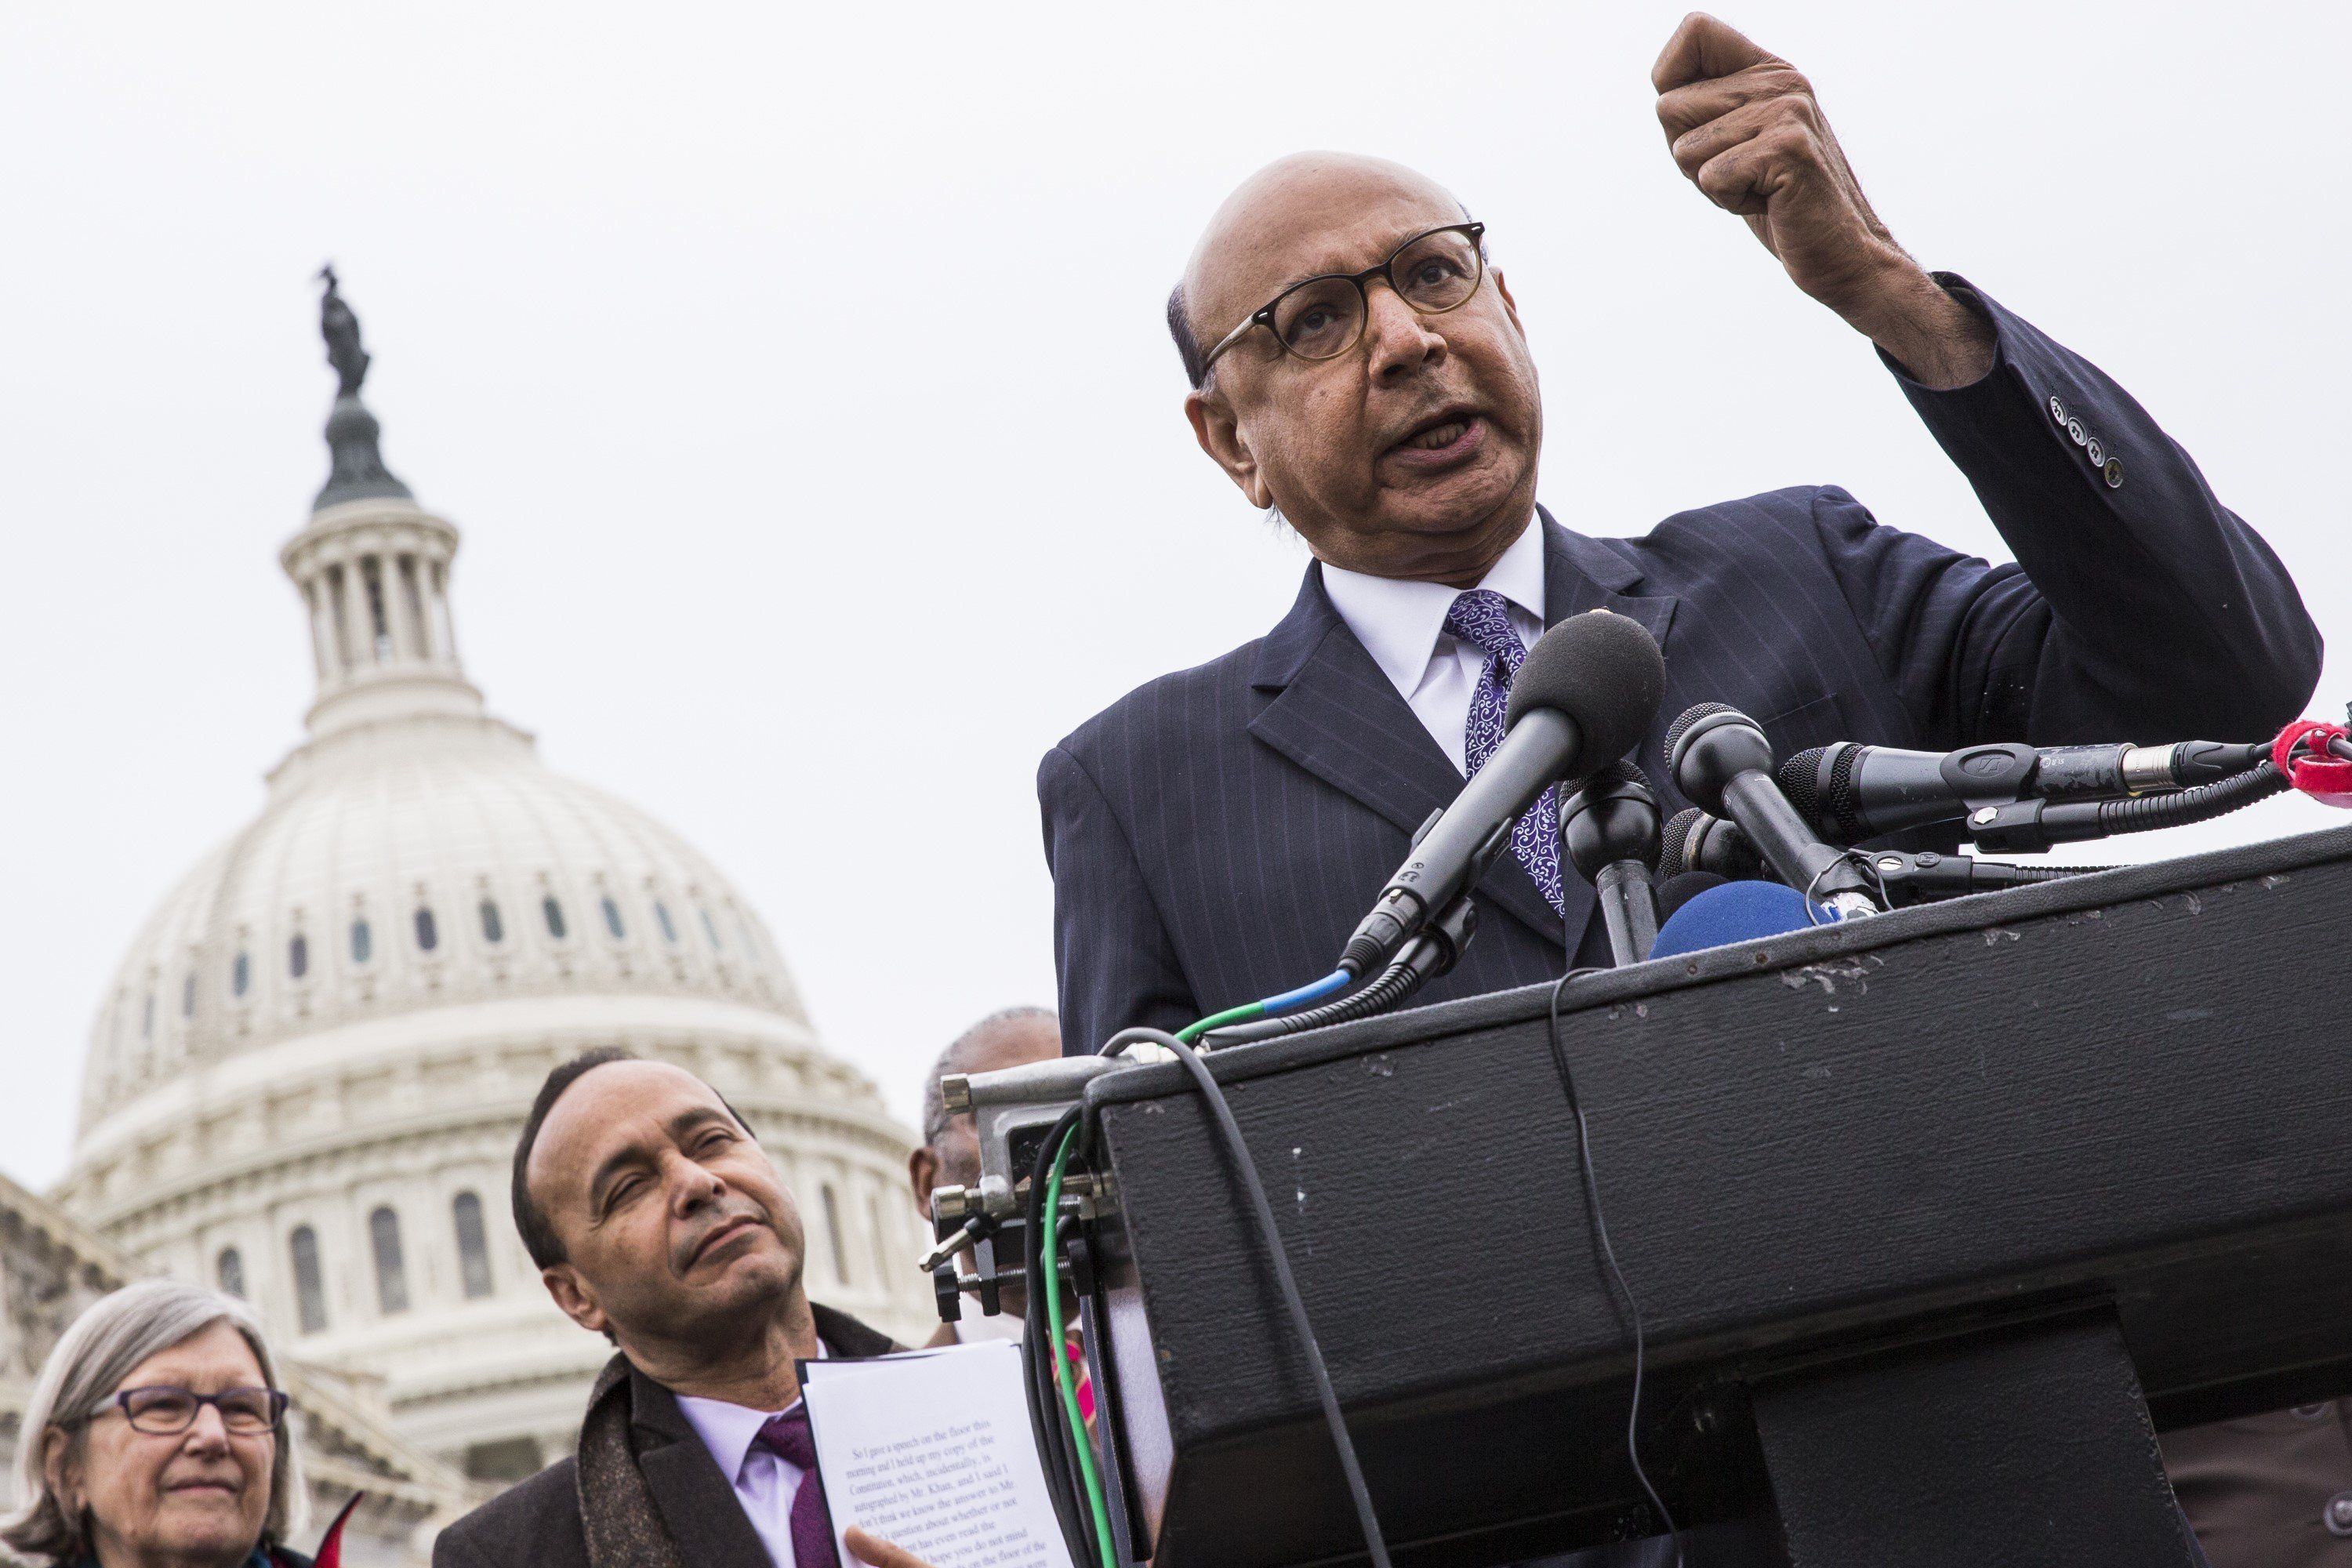 WASHINGTON, USA - FEBRUARY 1: Khazir Khan, a gold star father who lost his son in the war in Iraq, speaks out against President Trump and his Executive Order banning travel from seven majority muslim countries at the U.S. Capitol in Washington, USA on February 1, 2017. (Photo by Samuel Corum/Anadolu Agency/Getty Images)